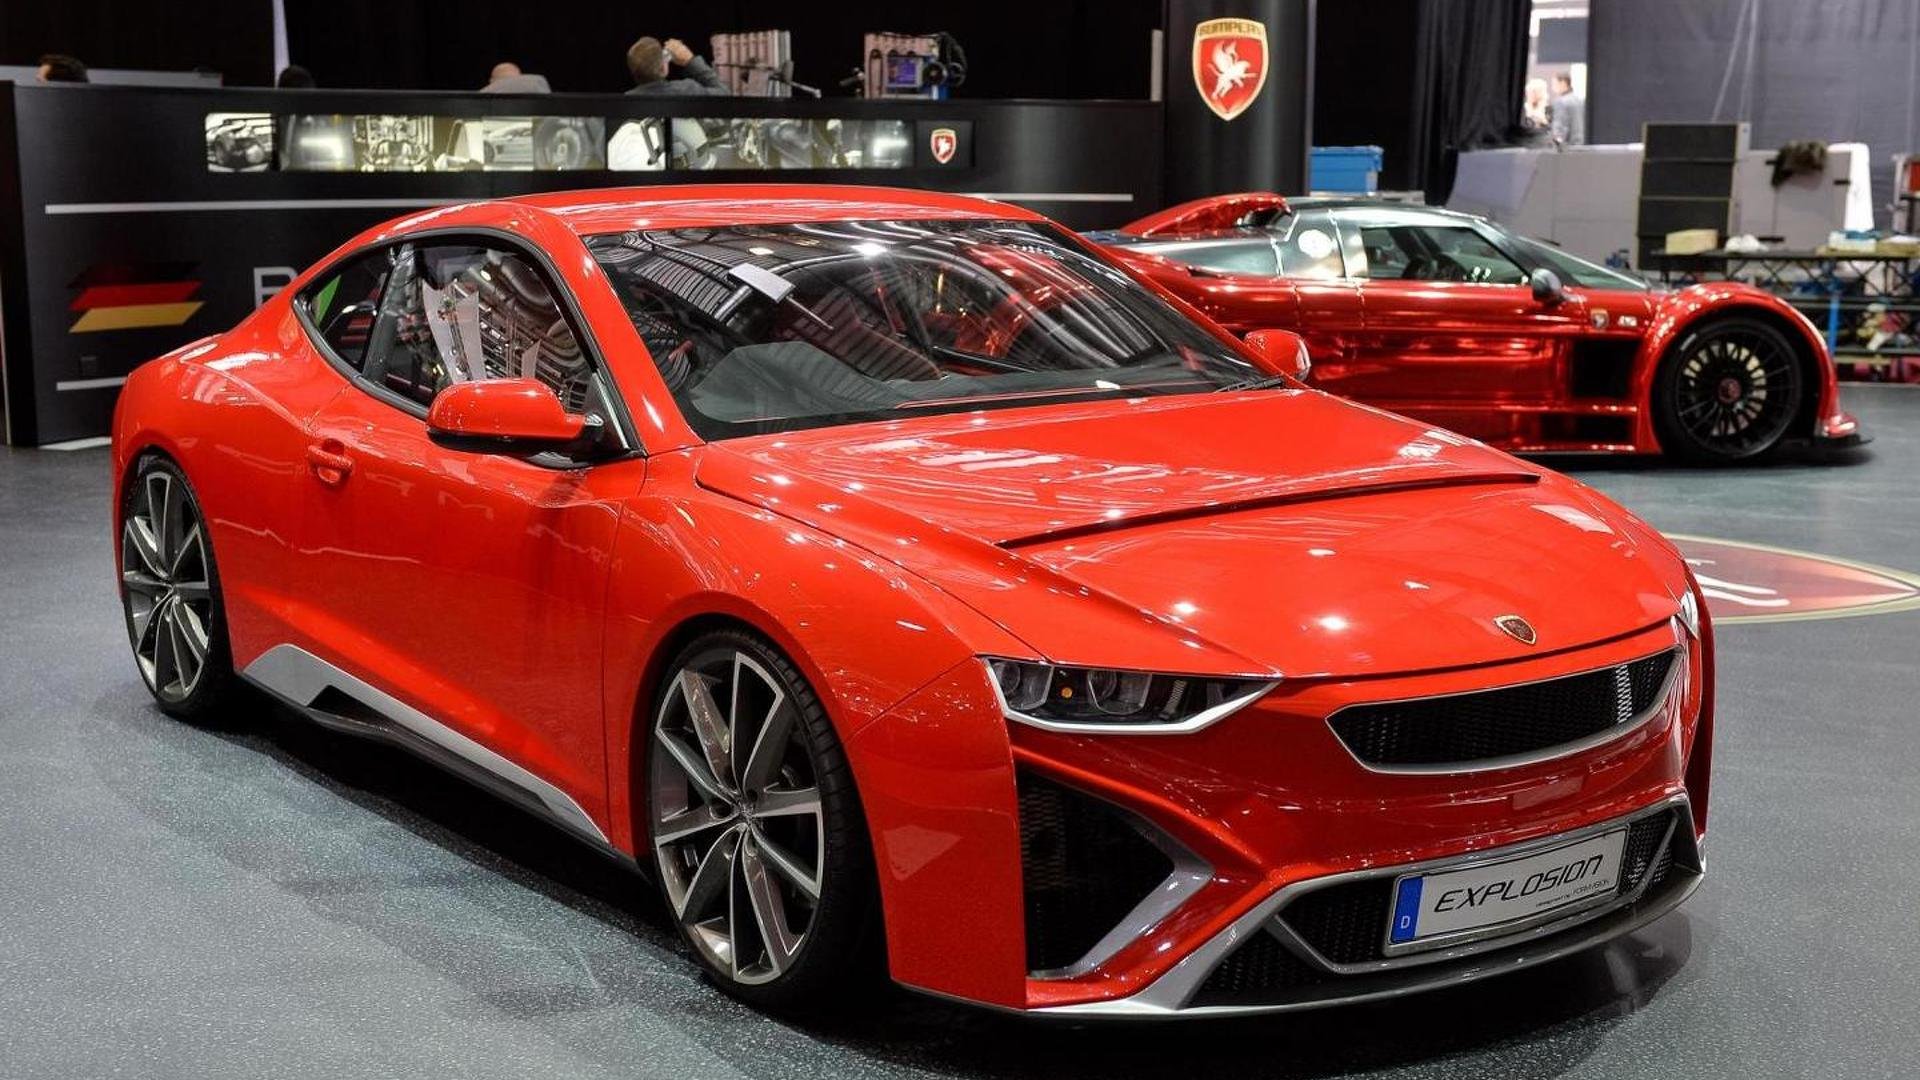 Gumpert reportedly bought by a group of investors